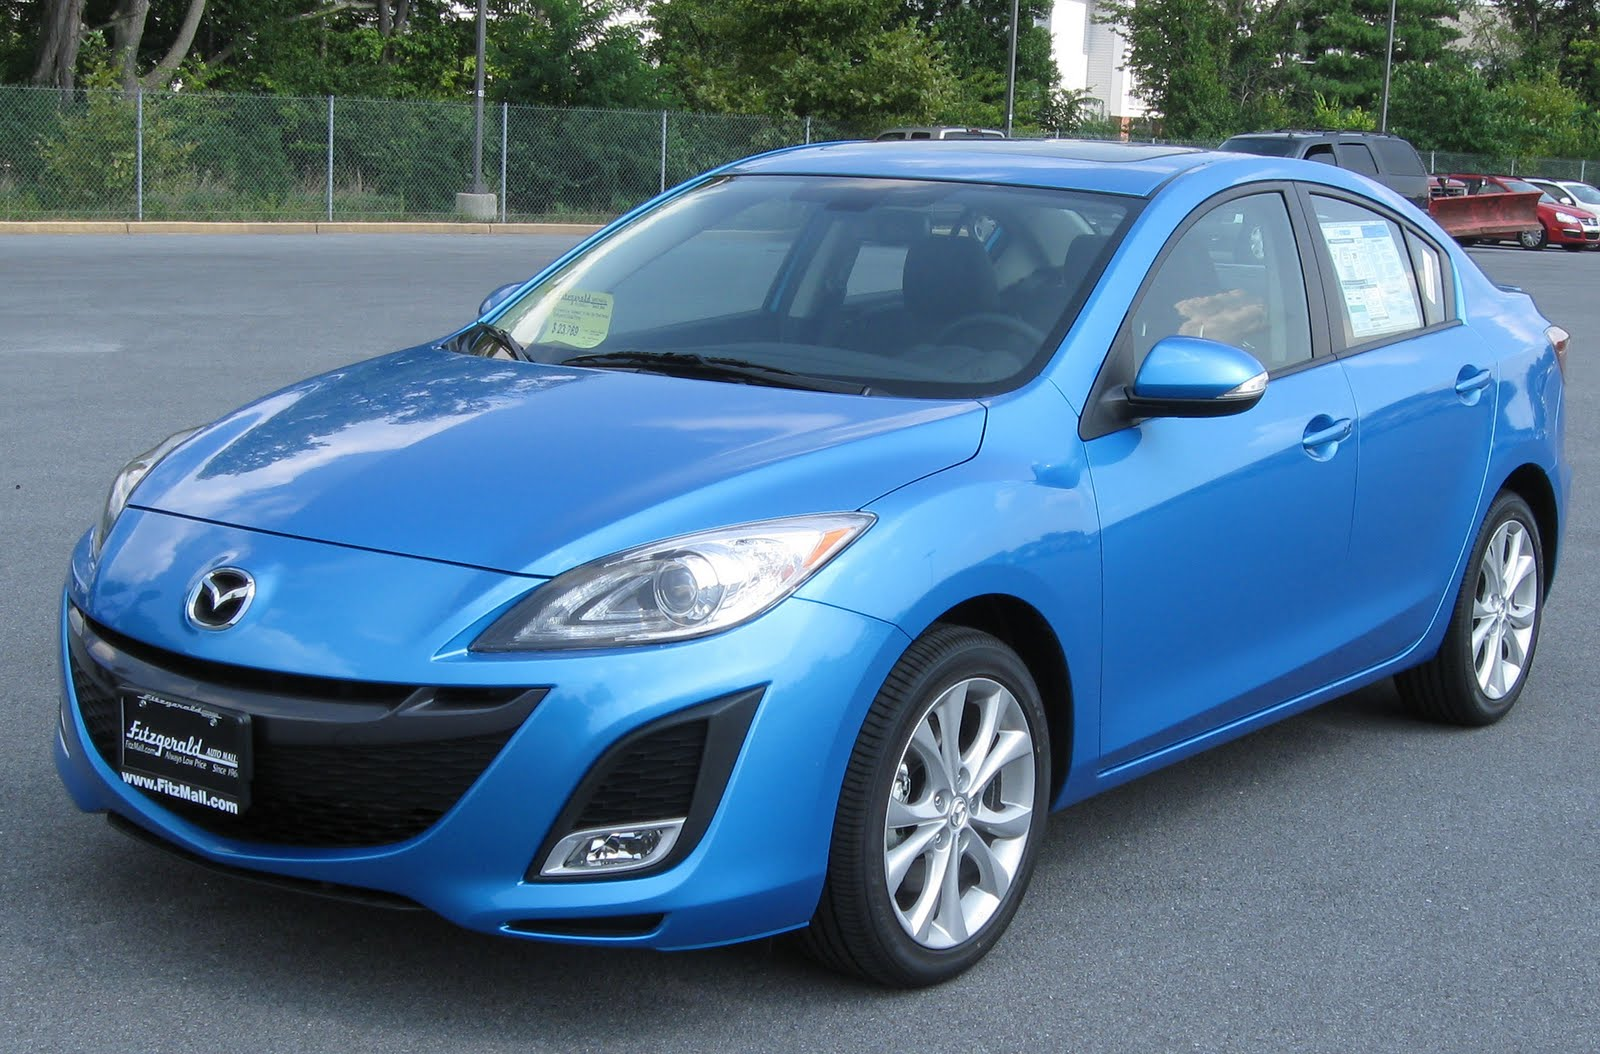 mazda 3 sedan review spec price and feature at world expensive car wallpaper picture collections. Black Bedroom Furniture Sets. Home Design Ideas